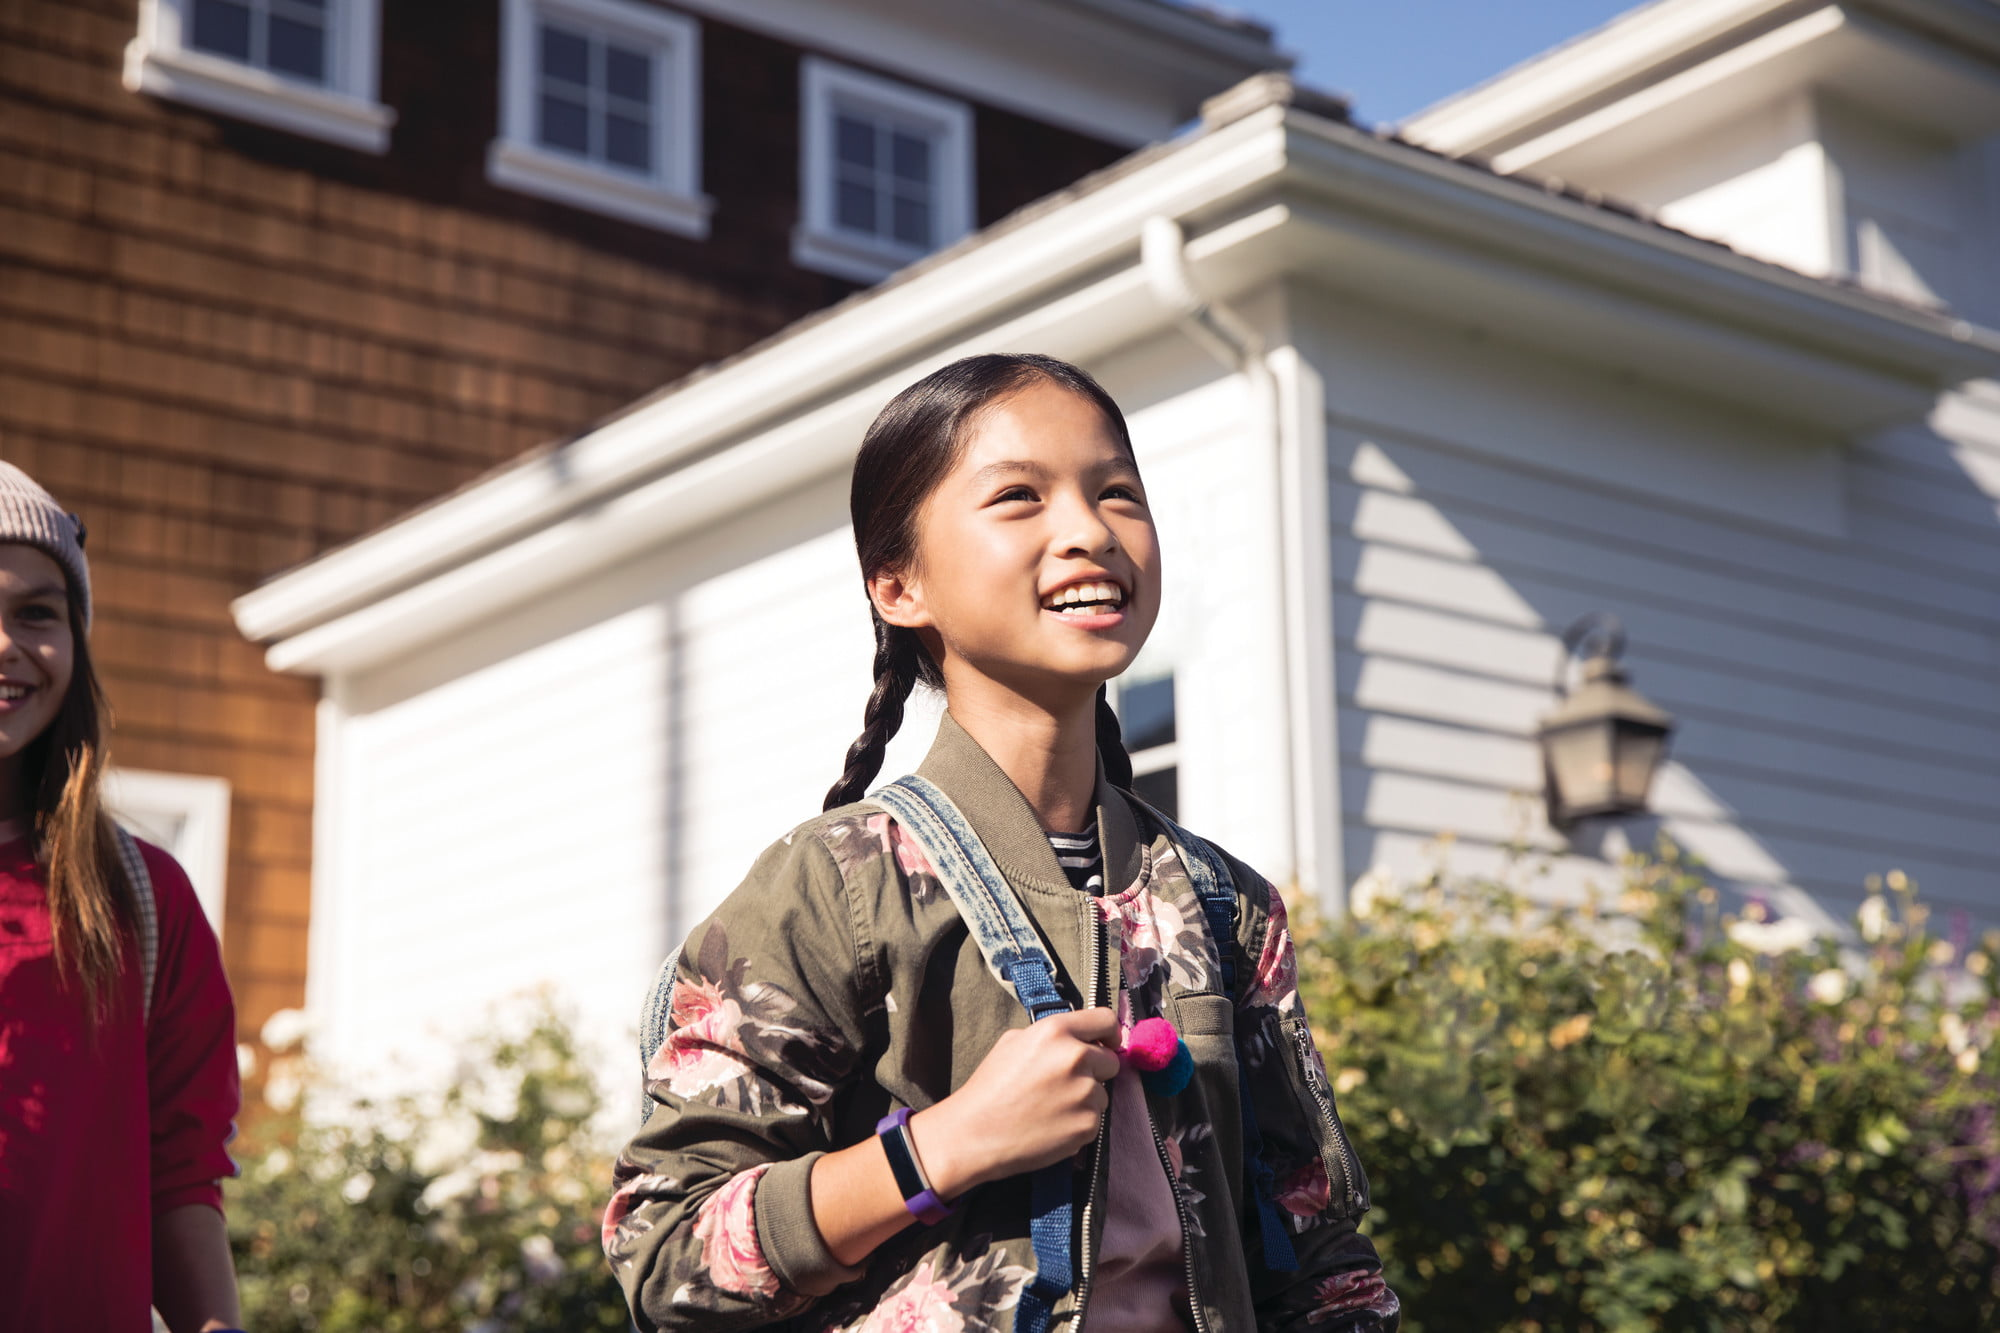 Fitbit Ace kids fitness tracker is now available for purchase CBS